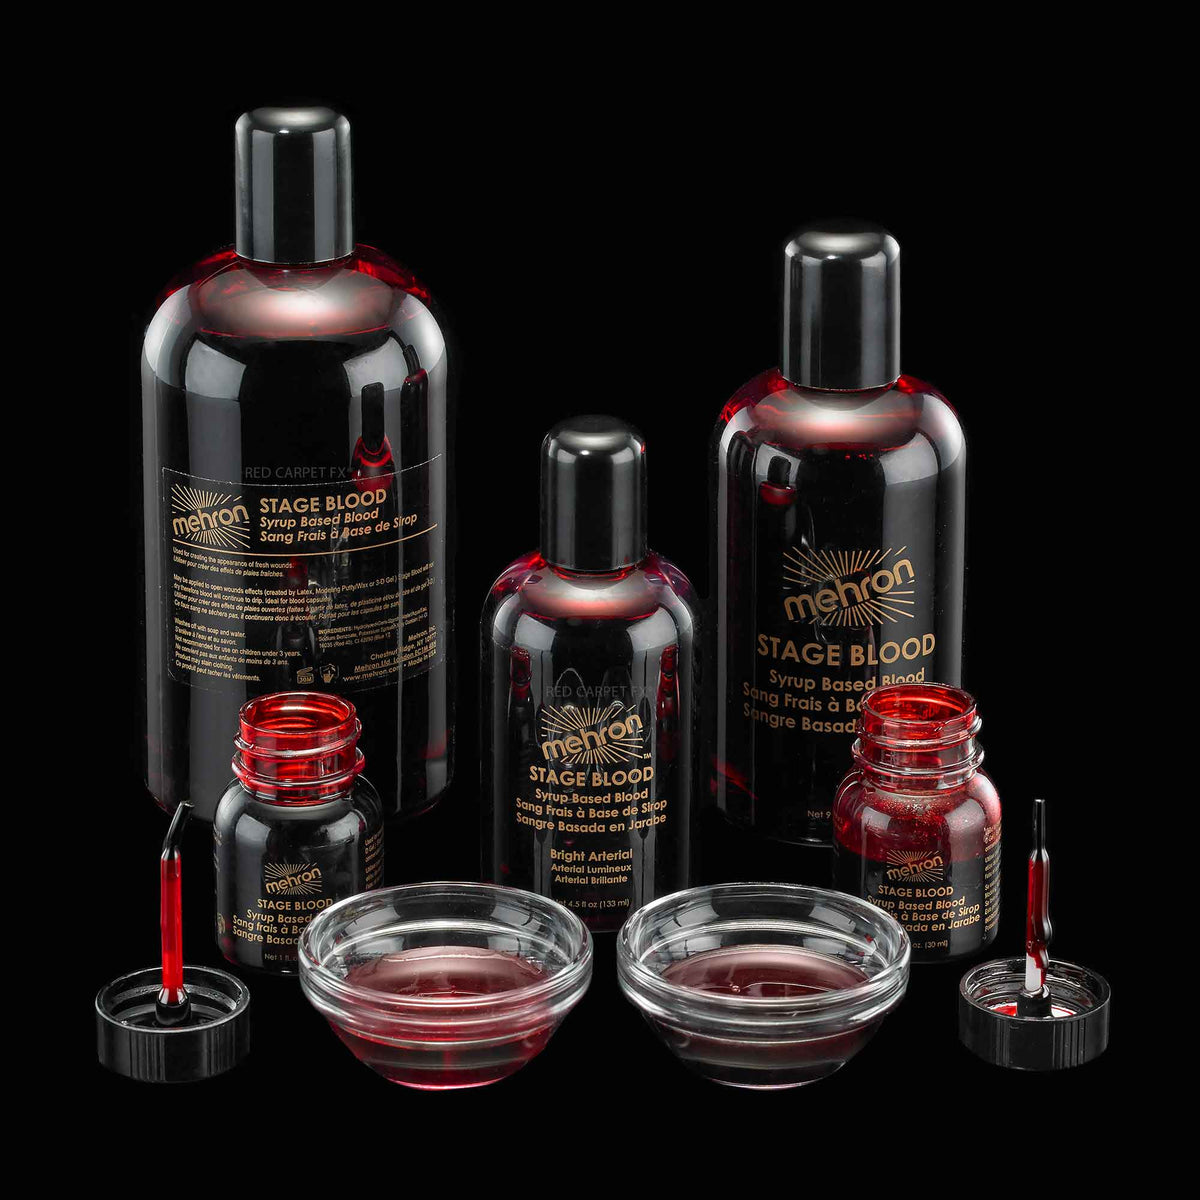 Mehron Stage Blood - Professional Fake Blood